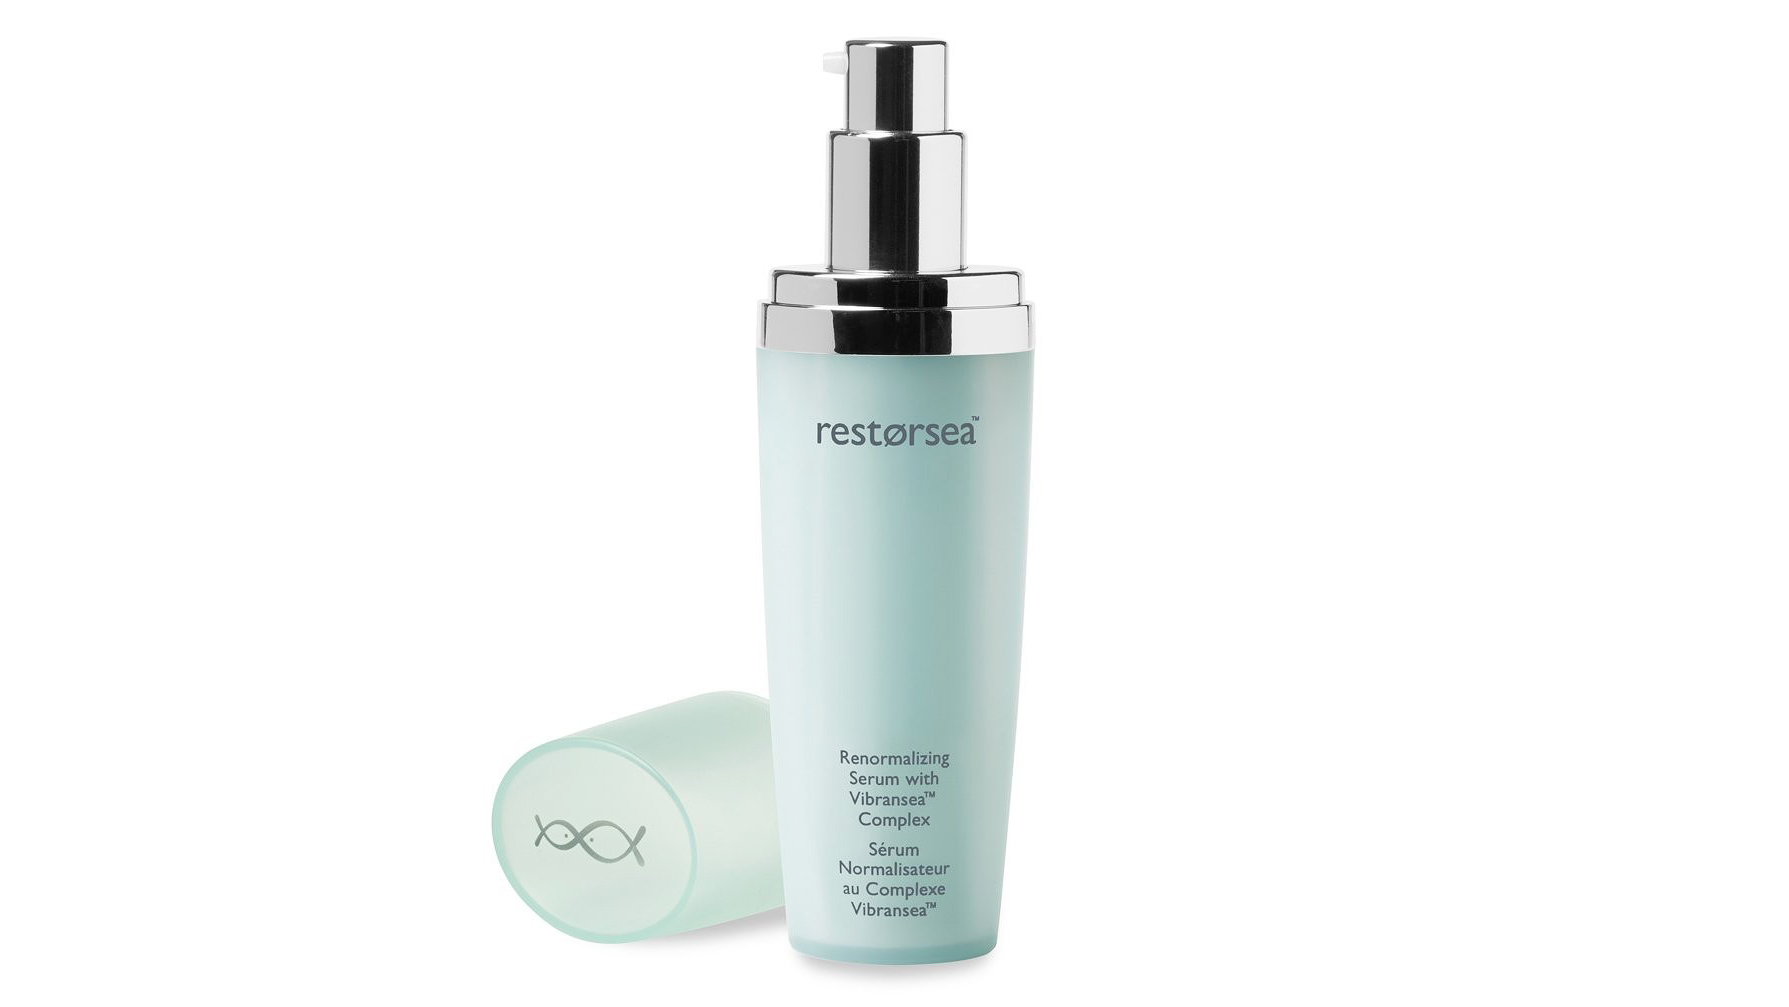 restorsea renormalizing serum